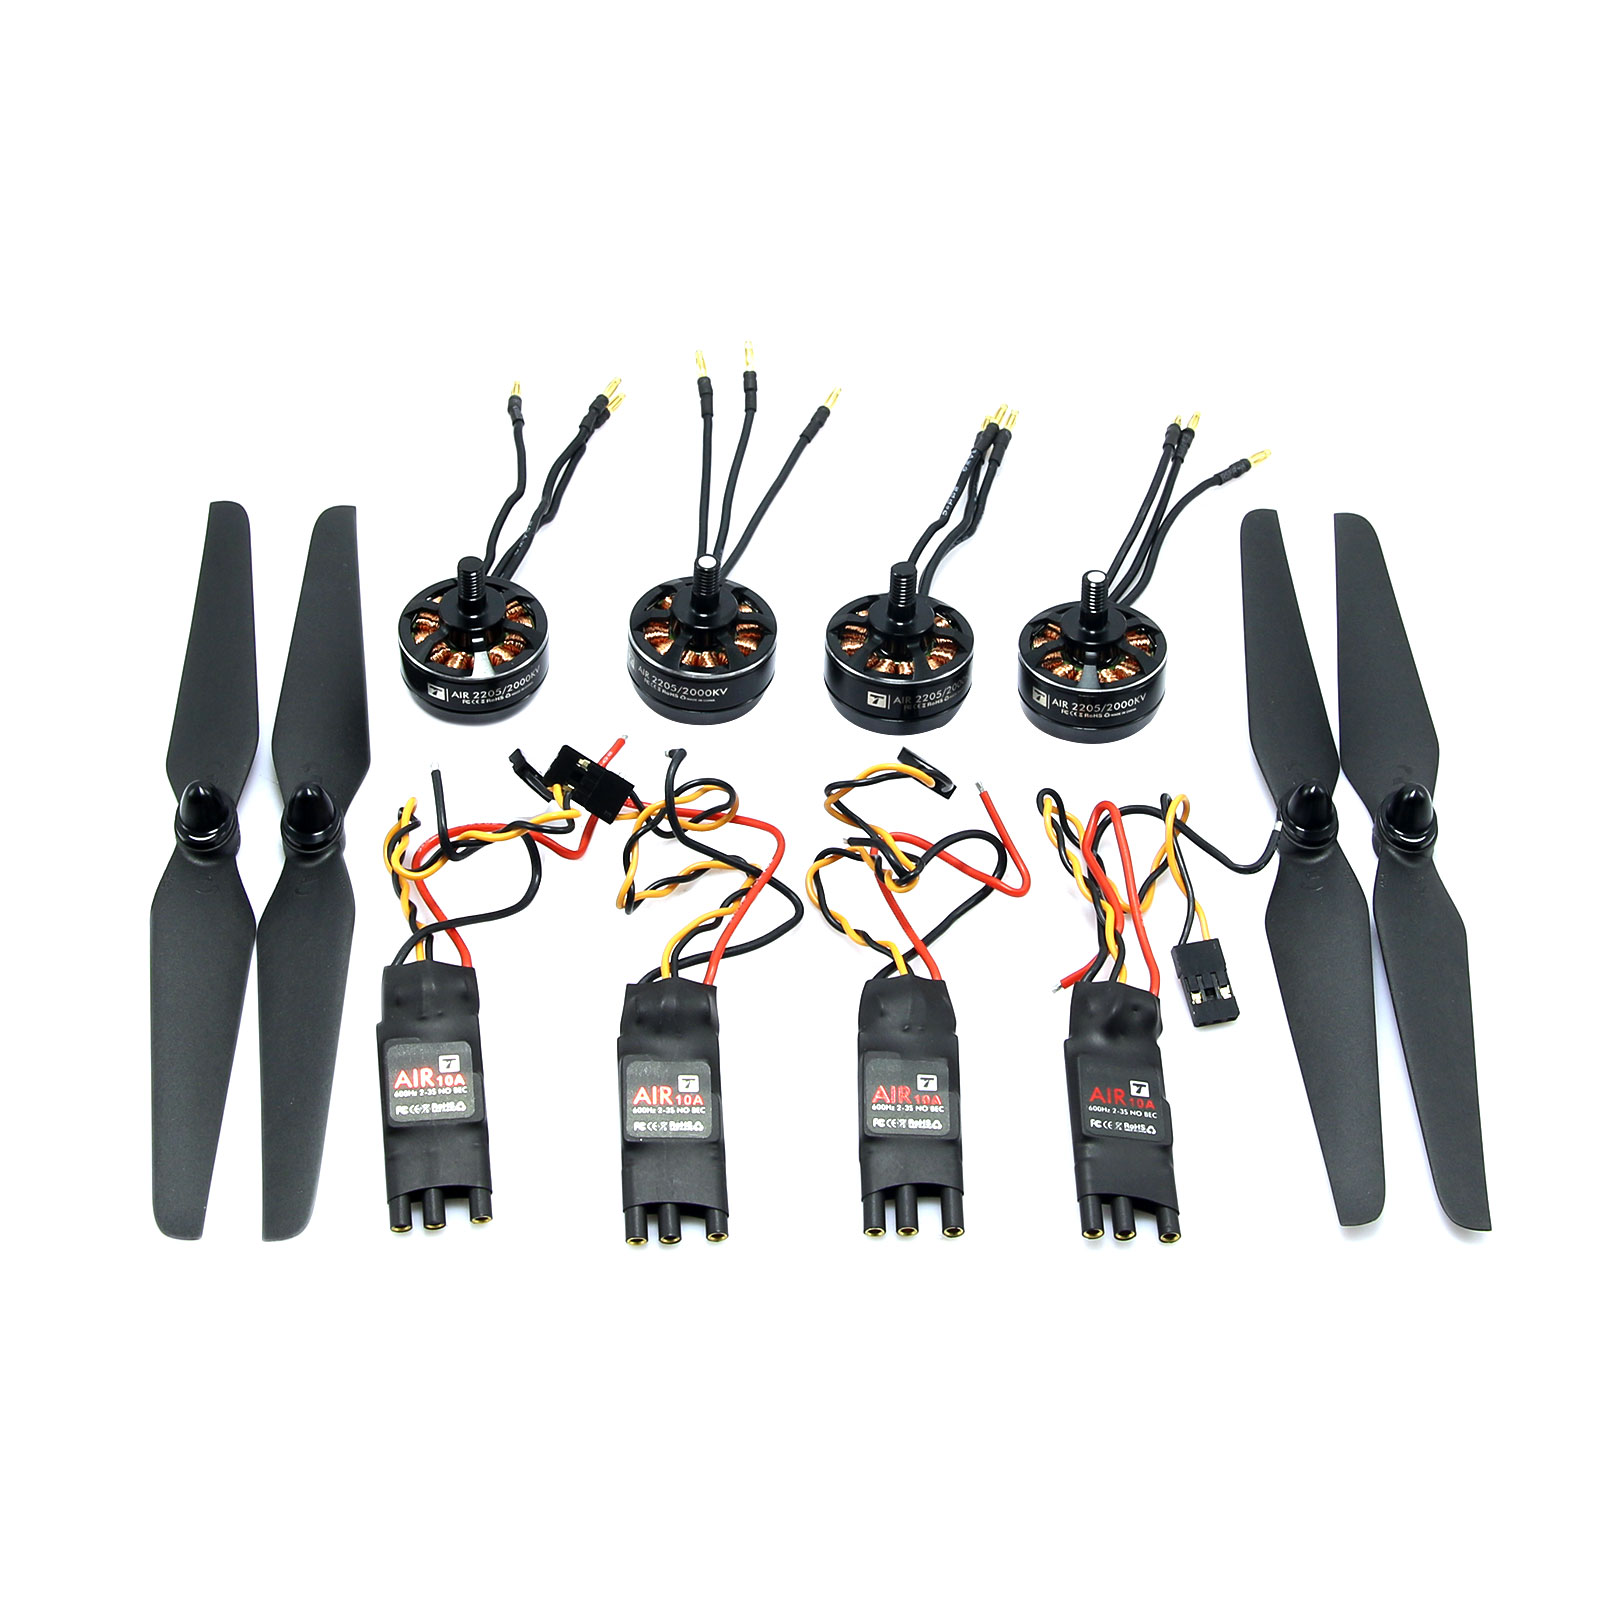 ФОТО T-MOTOR Air Gear 200 Combo AIR2205 KV2000 Brushless Motor & T6535 Prop & AIR10A ESC for Multicopter FPV Photography